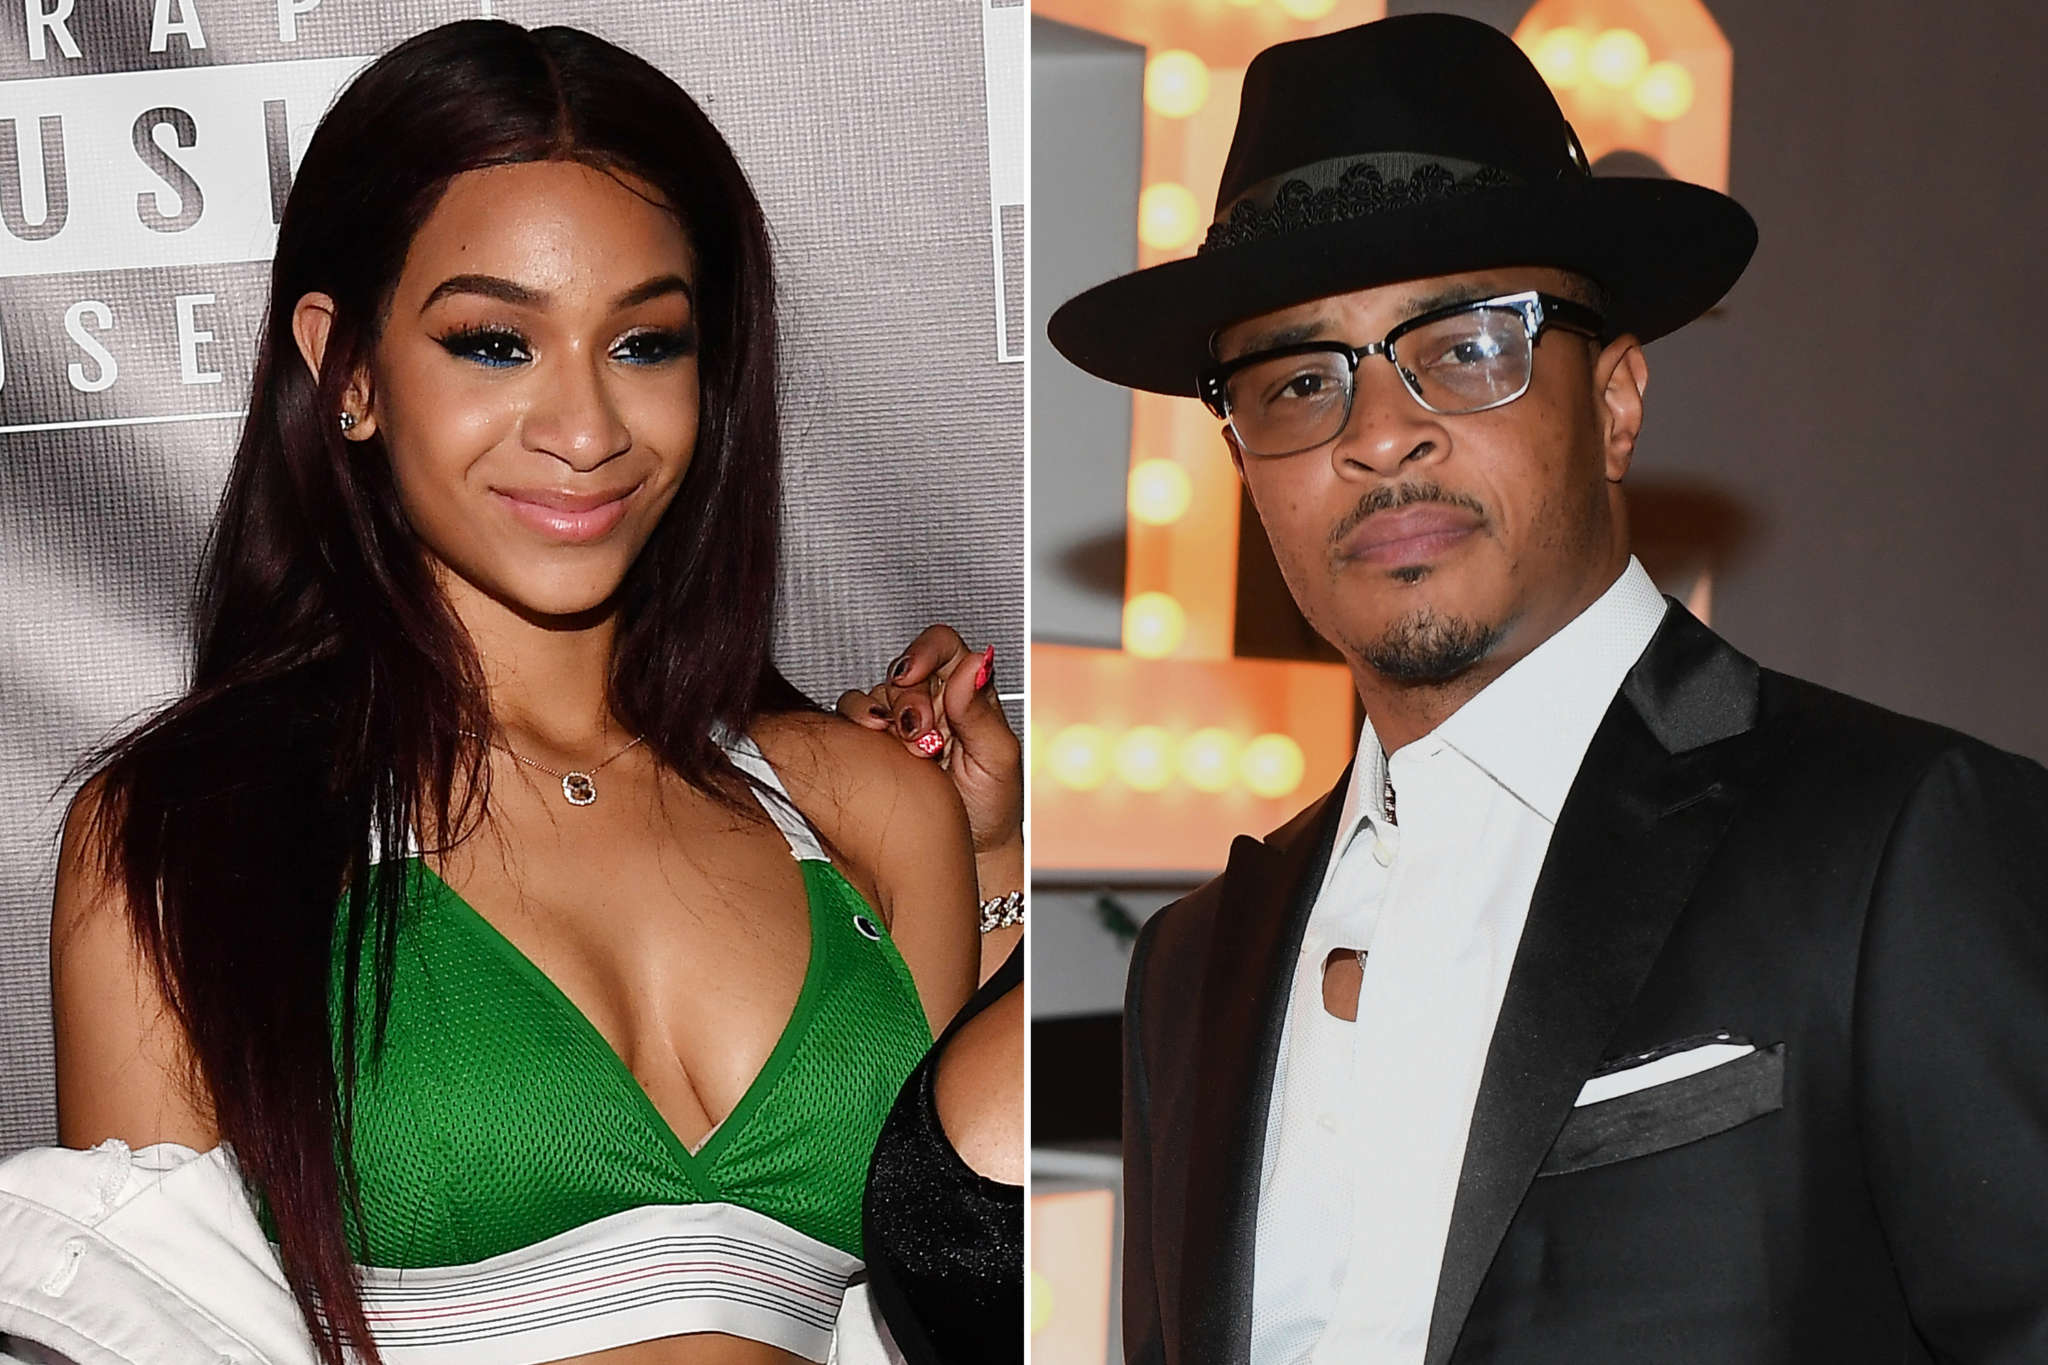 Deyjah Harris' Mom, Ms. Niko Comments Amidst The Huge Scandal Involving T.I.'s Comments About Their Daughter